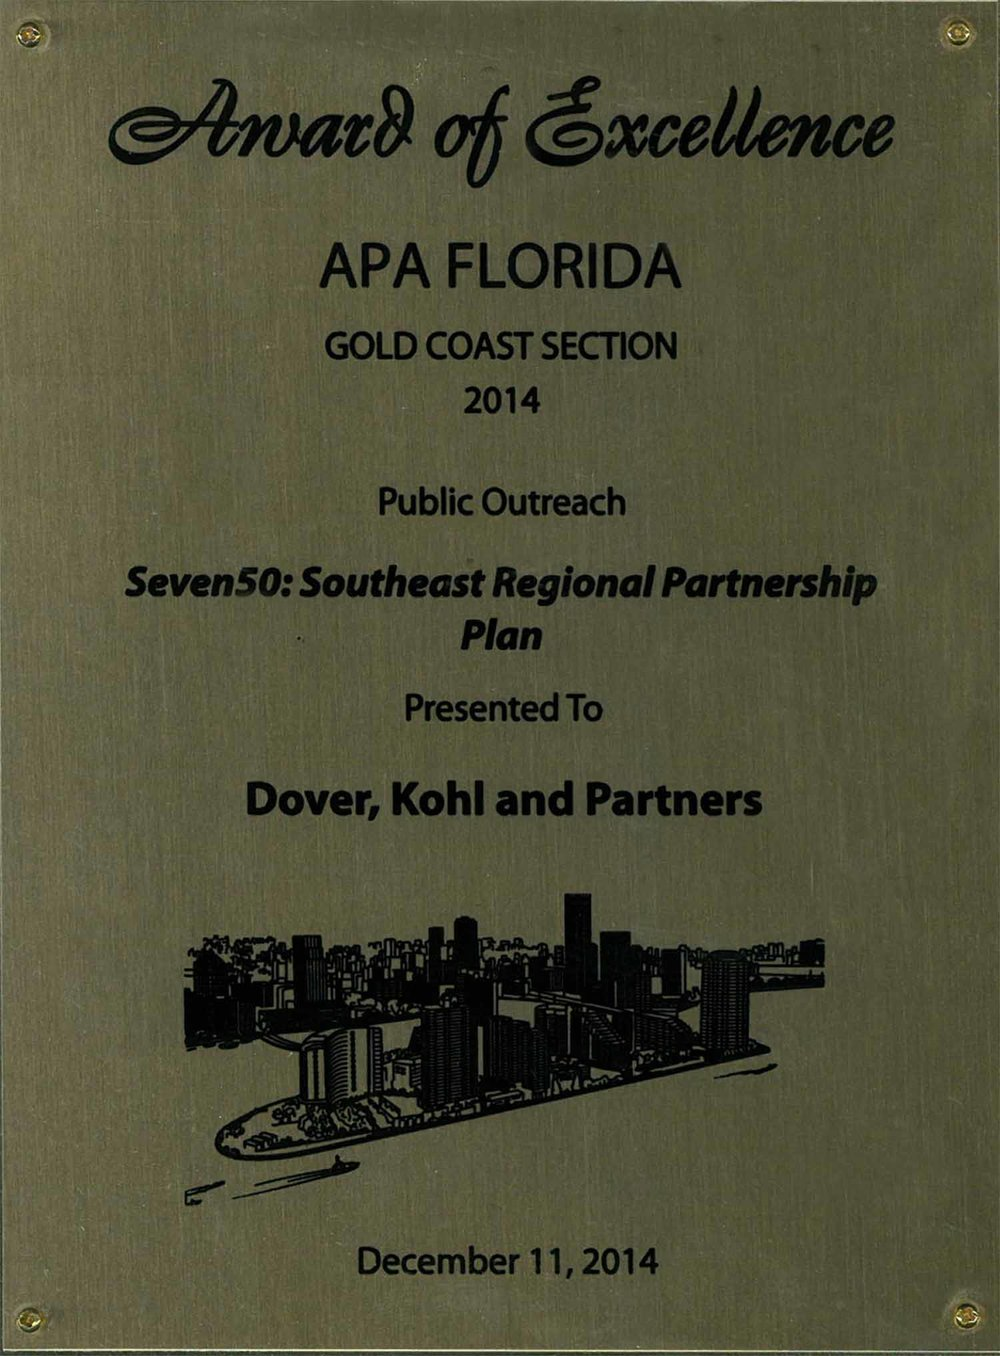 2014-Award of Excellence for Best Practice Seven50 Southeast Florida Regional Partnership Plan.jpg